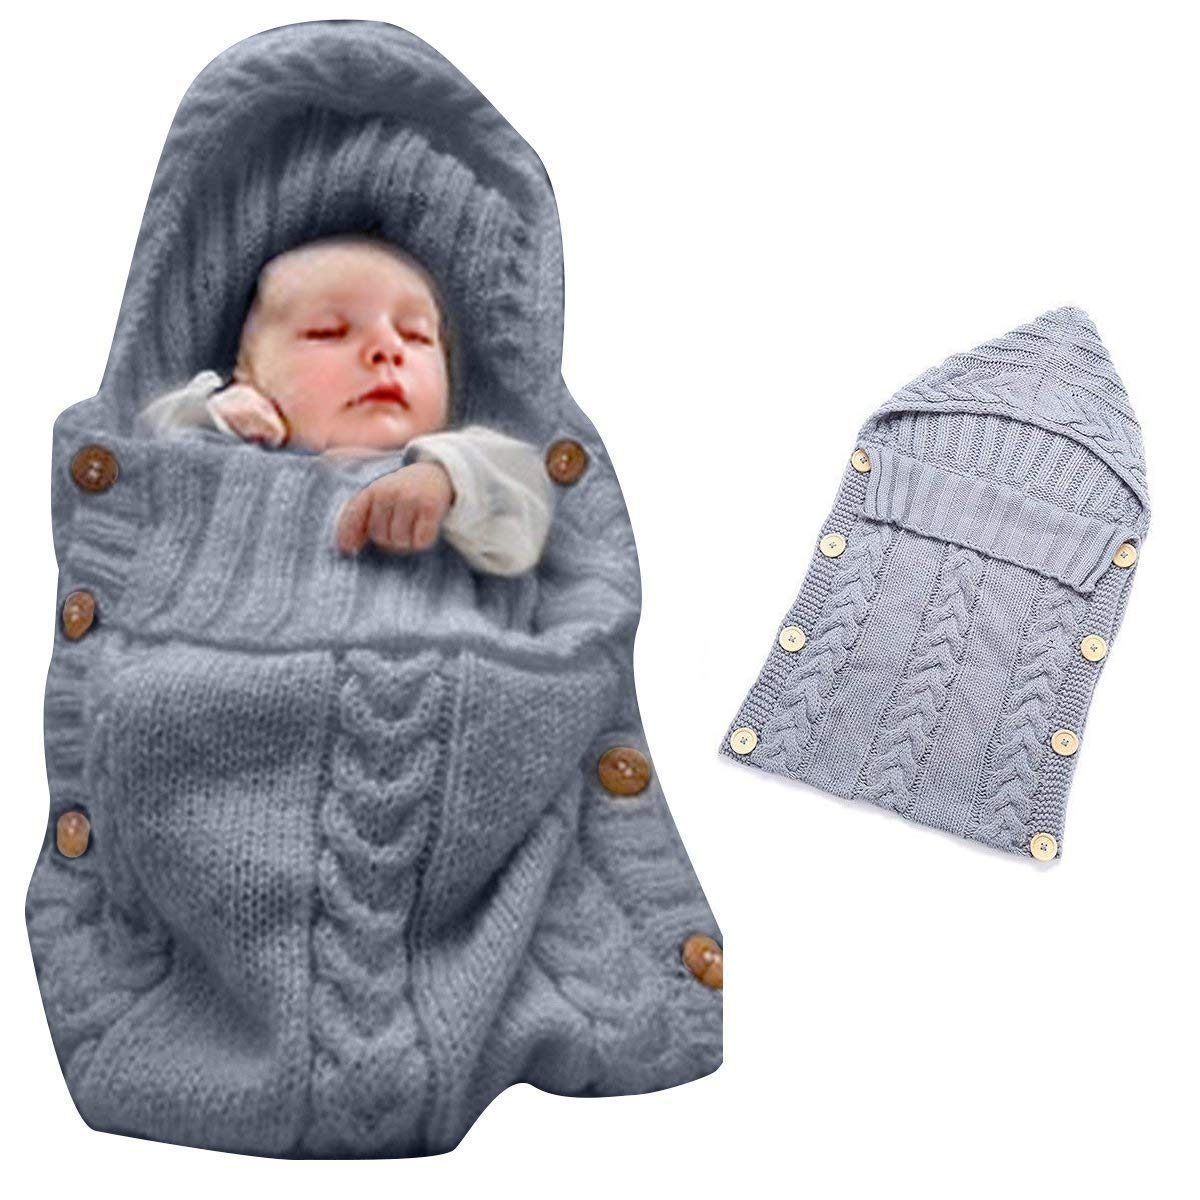 Creative Baby Stroller Sleeping Bag Warm Swaddle Quilt Blanket Wrap Sleep Sack Stroller Accessories Anti Cold Child Baby Winter Leg Cover Mother & Kids